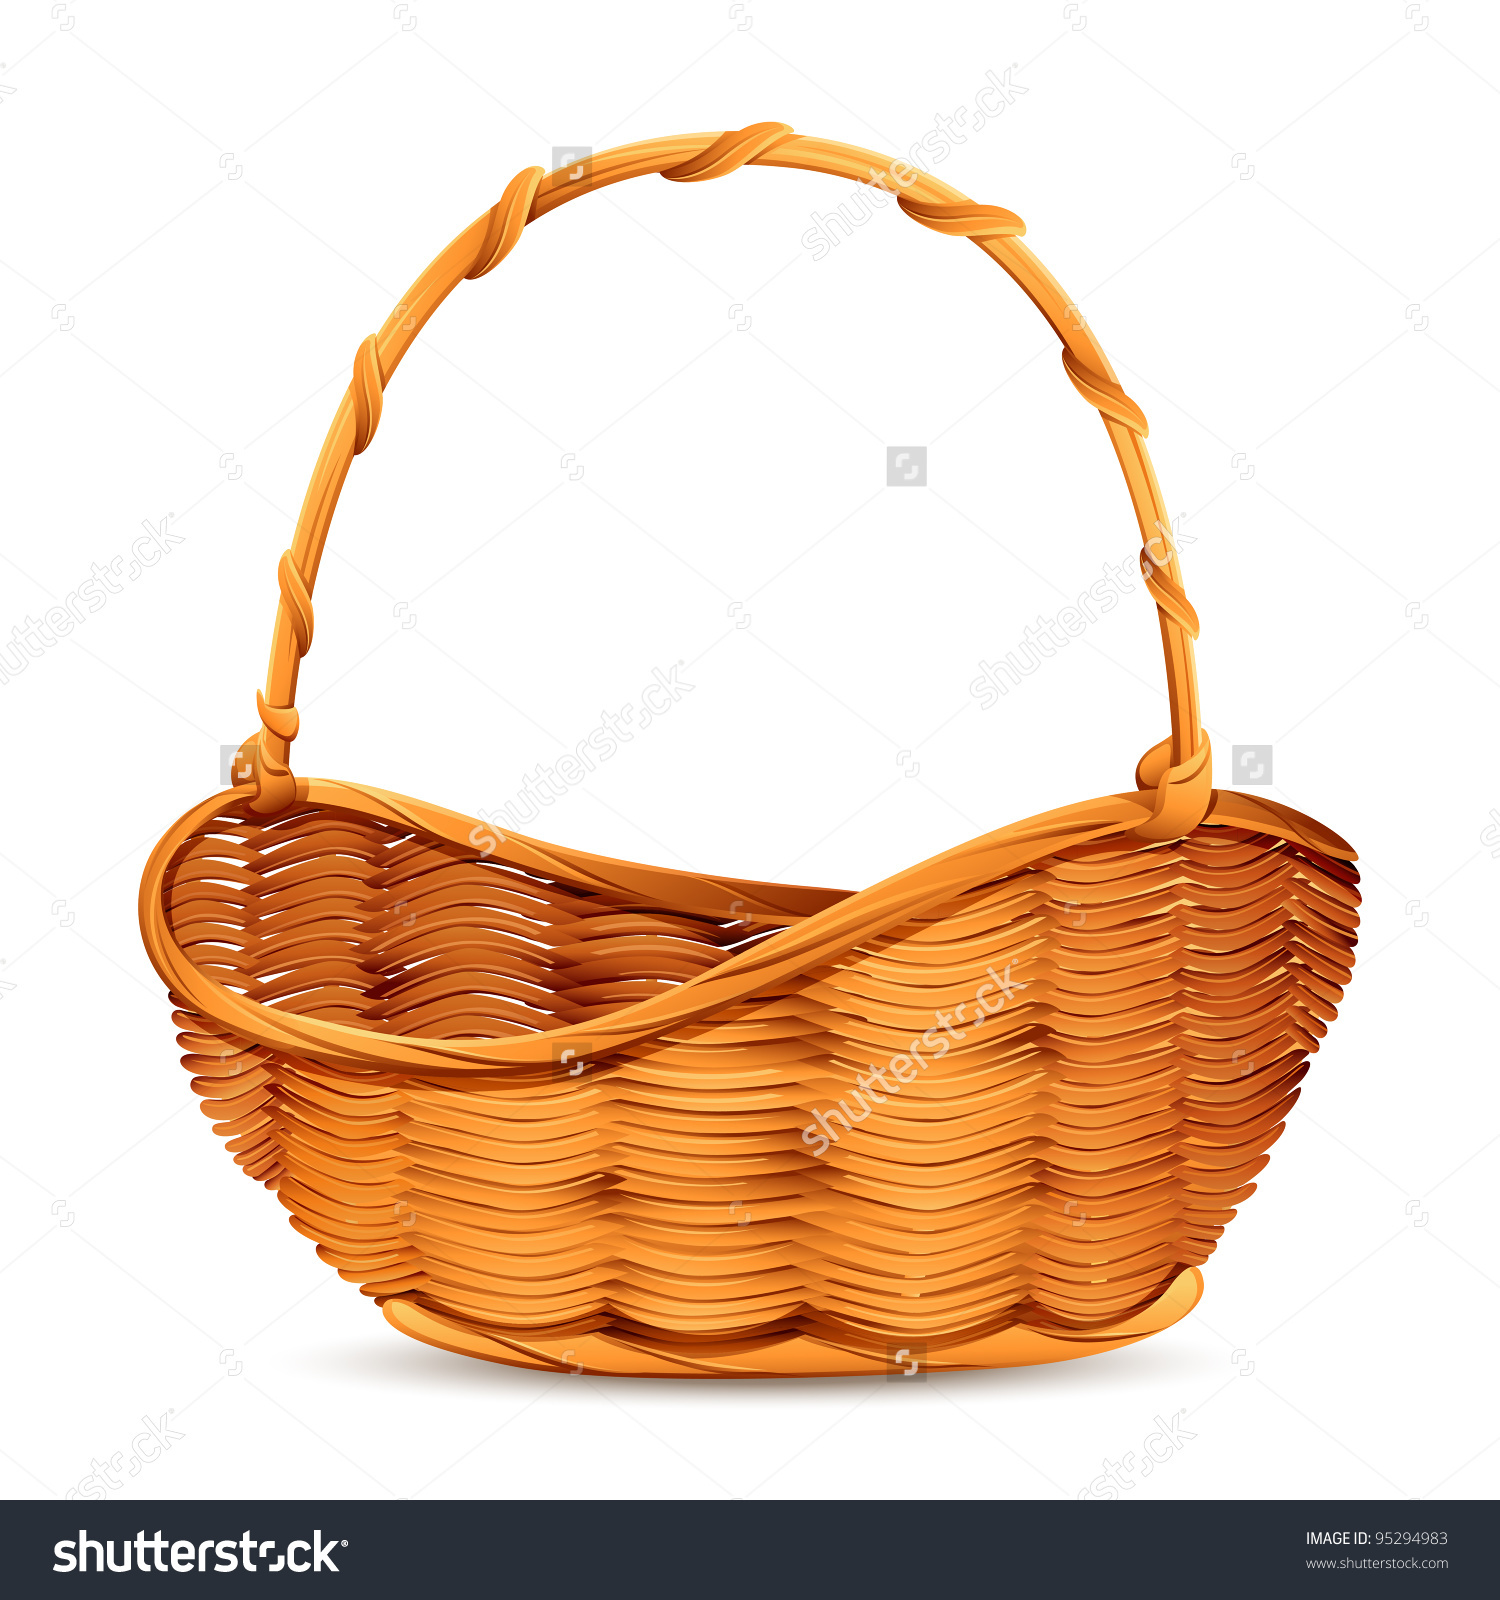 Empty Basket Clipart Clipart Collection Royalty Free, Laundry Basket.